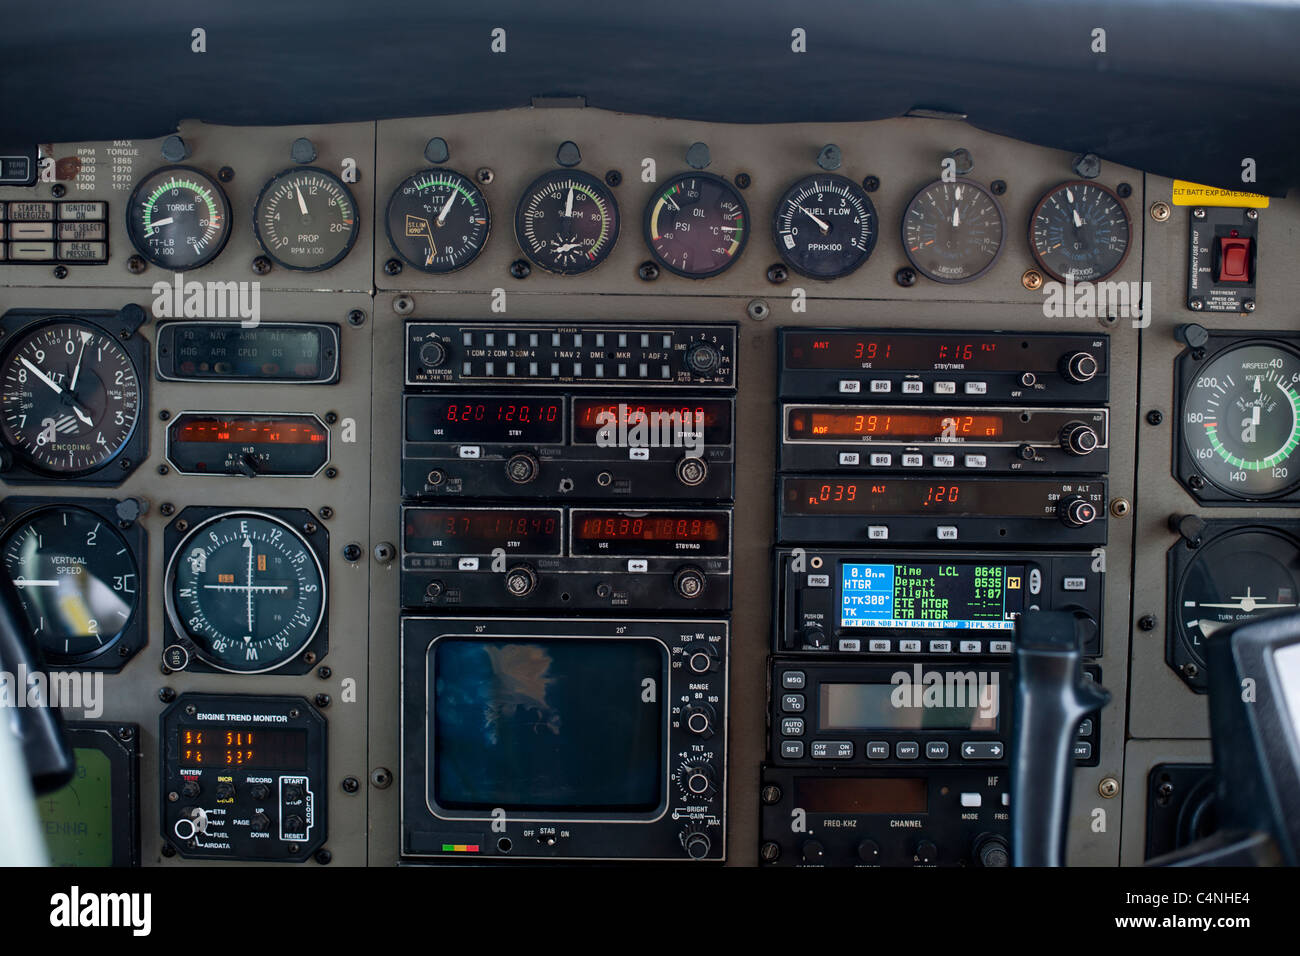 Close-up of old cockpit control panel of airplane - Stock Image